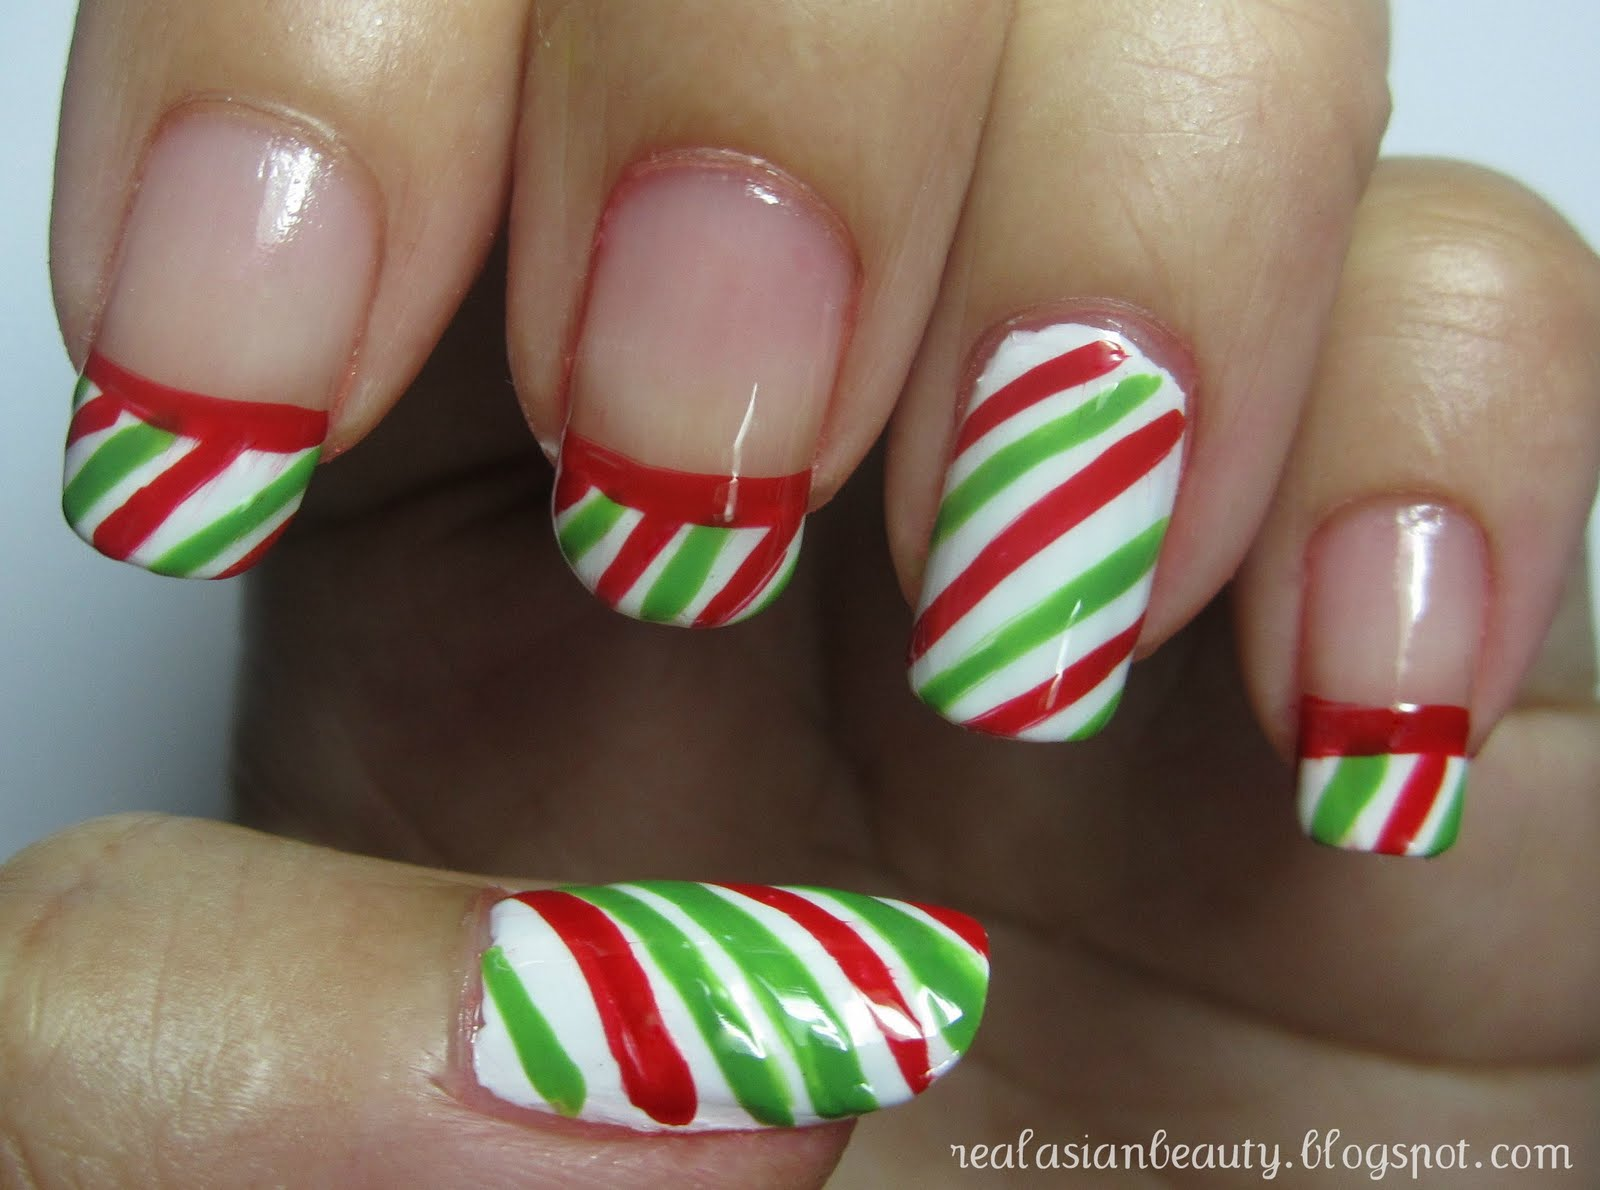 Real Asian Beauty: Candy Cane Nail Art Tutorial